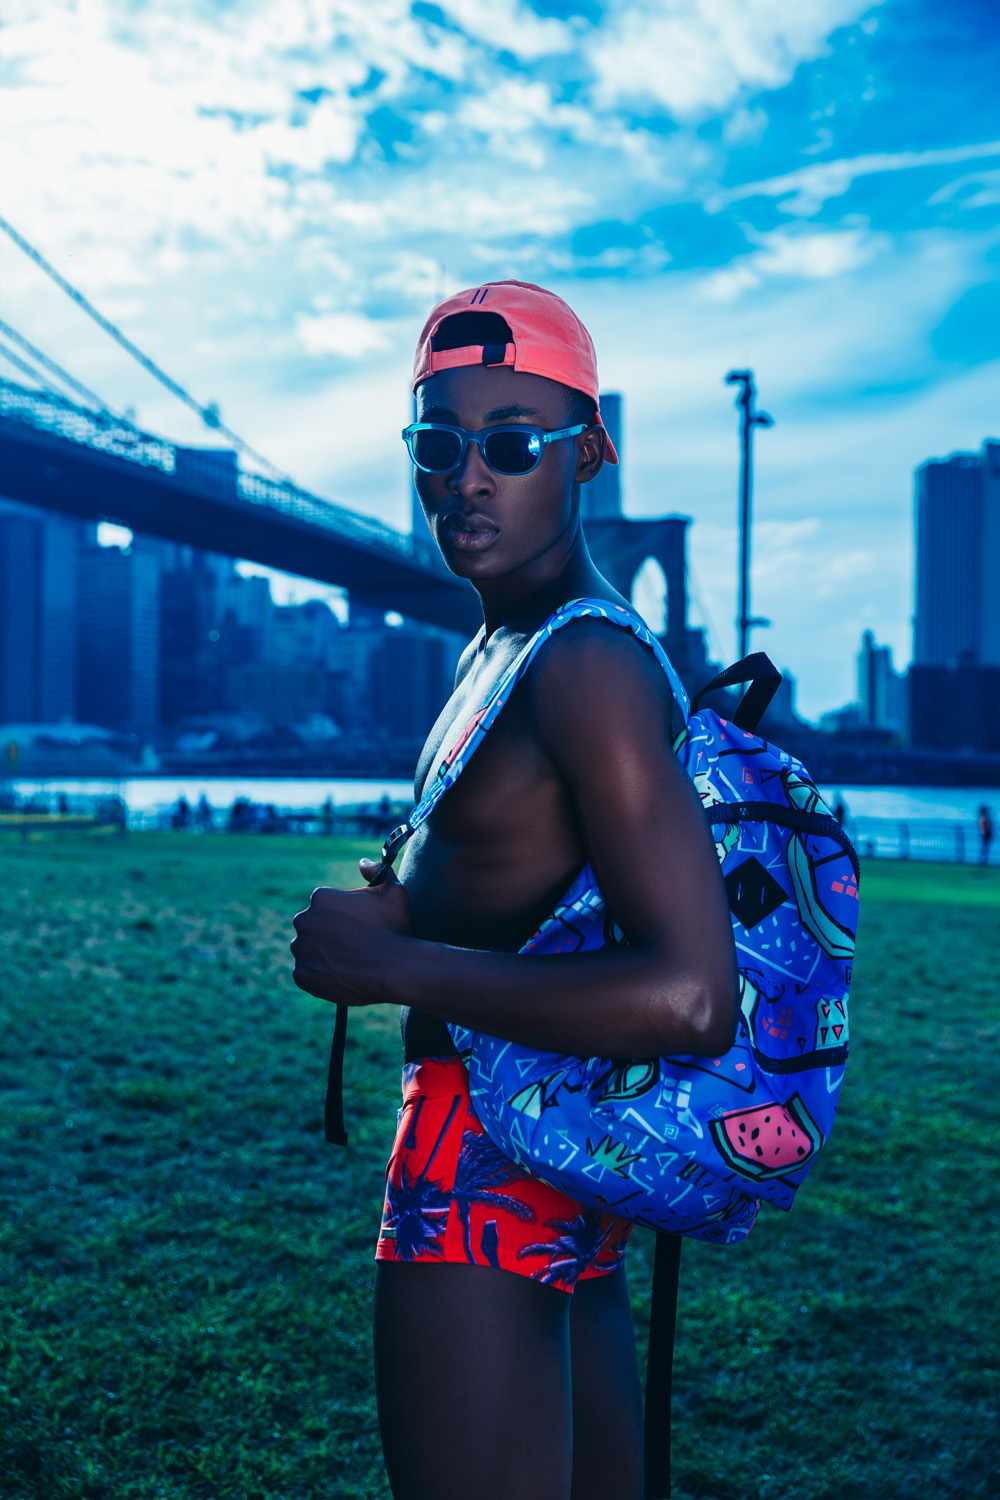 """Menswear blogger & stylist Jorge Gallegos teamed up with photographer Ignis Terram, to capture male model Jide True Alao in the story """"Indigo Summer"""". The whimsical and bright editorial celebrates the end of summer."""